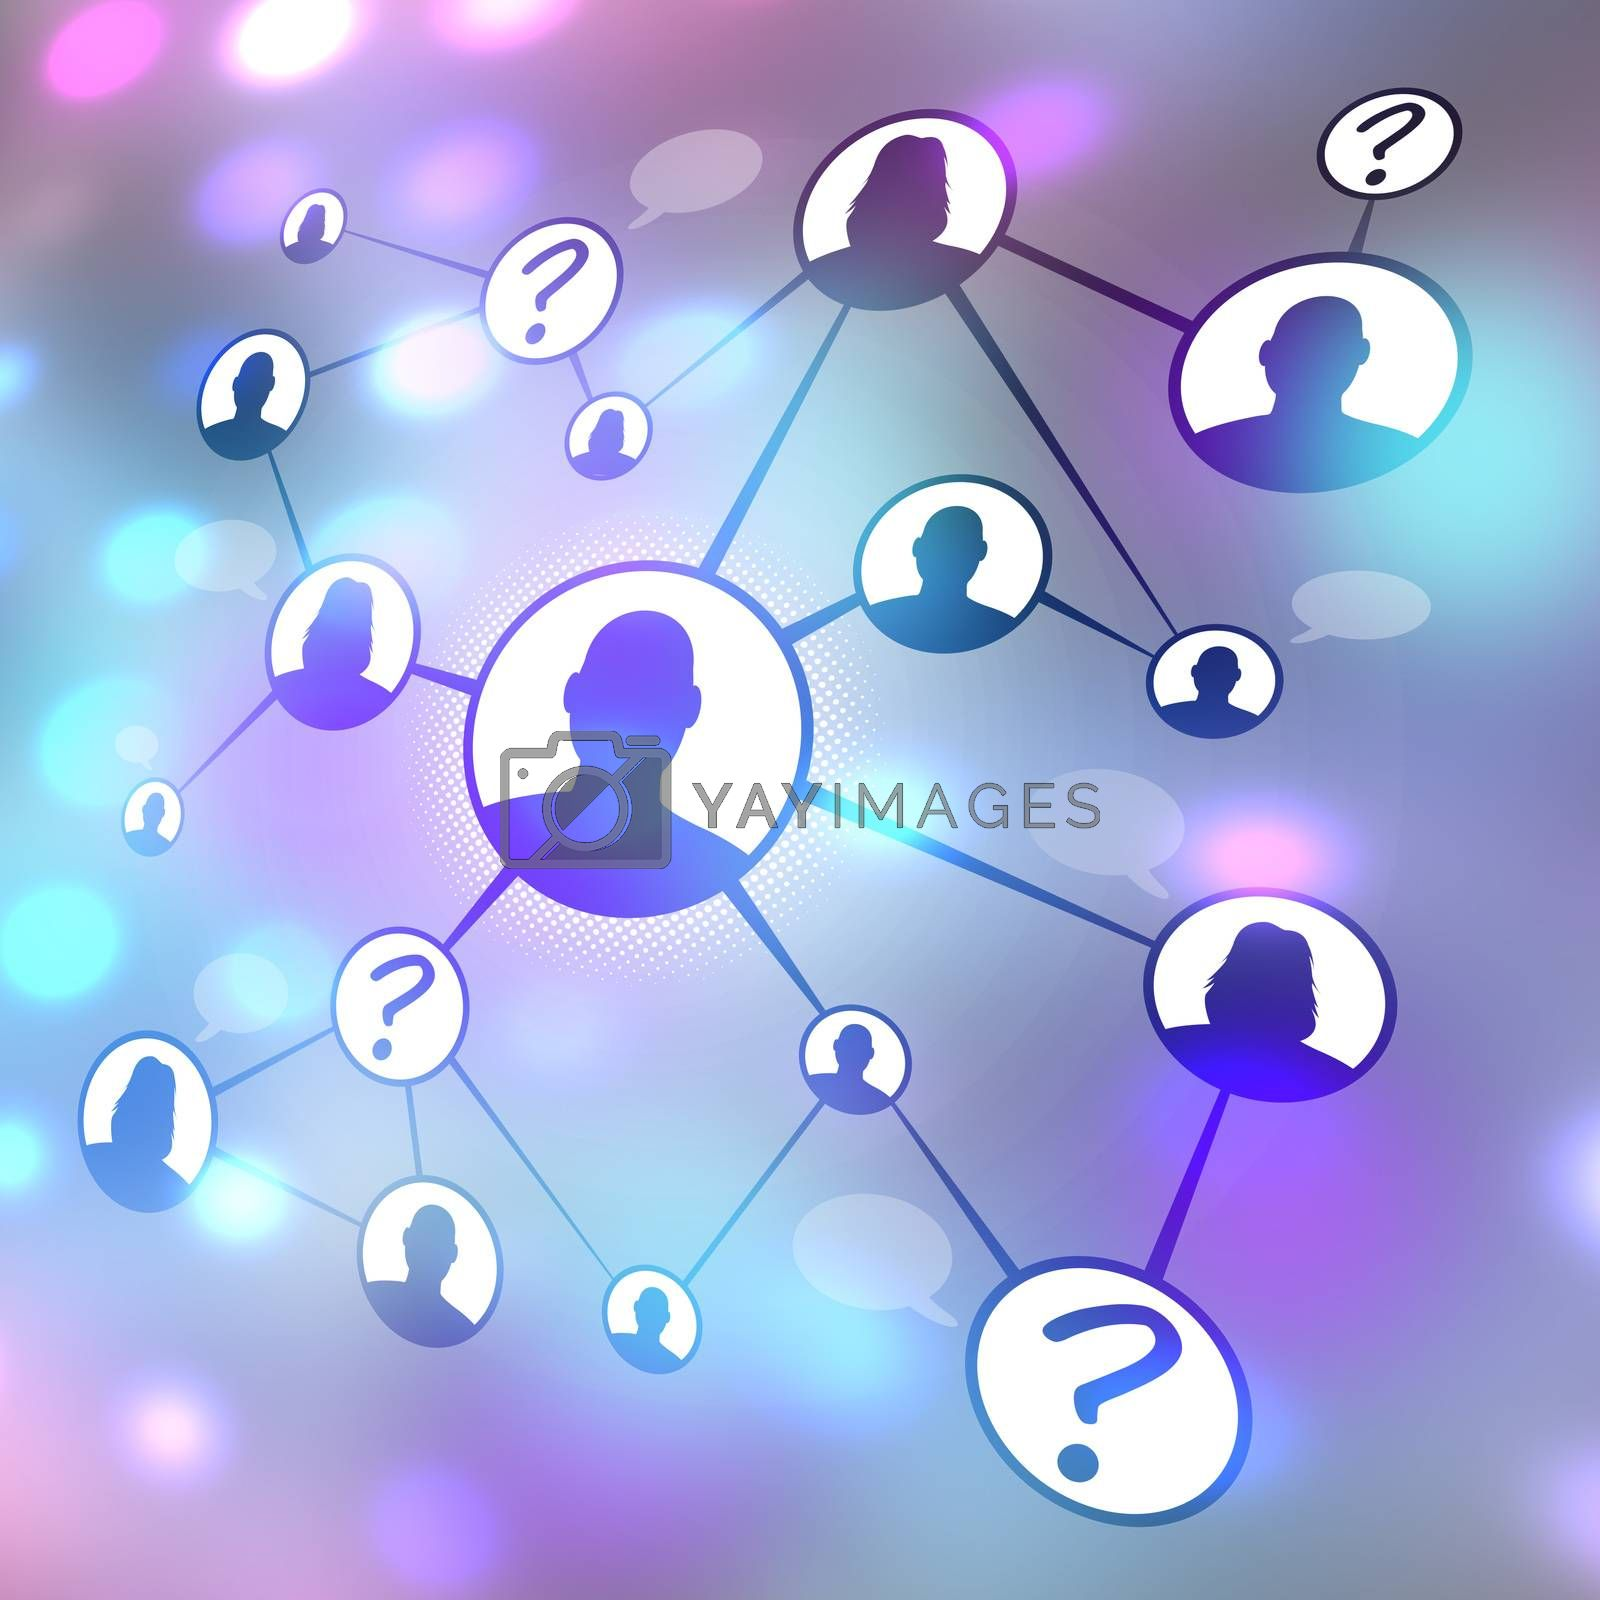 A flow chart diagram of different men and women connecting together via social media or social networking.  Great for word of mouth referral marketing or online dating concepts.